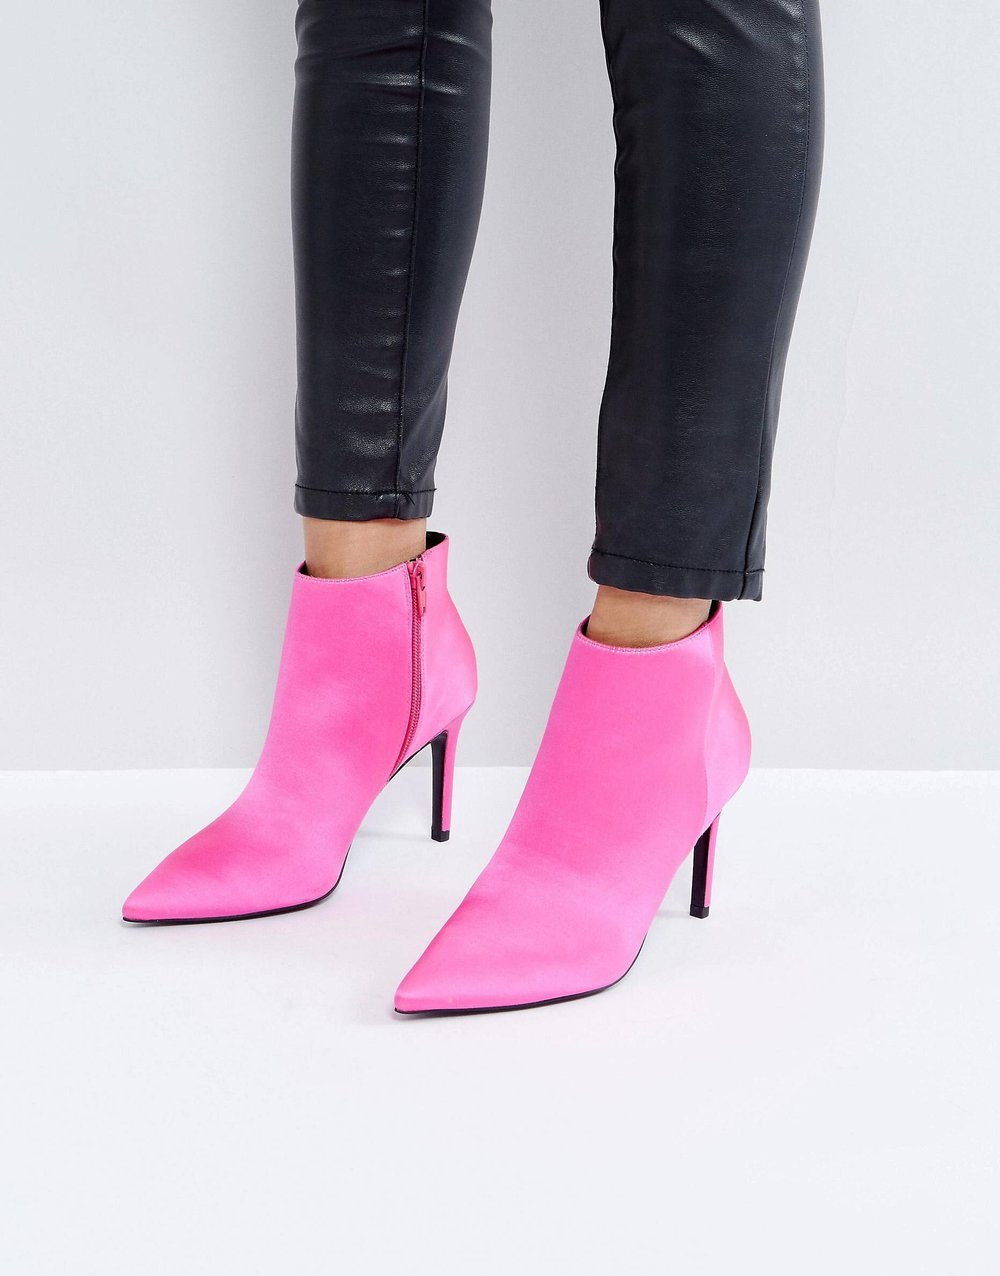 Hot Pink Heeled Booties - Ok, so maybe these aren't your